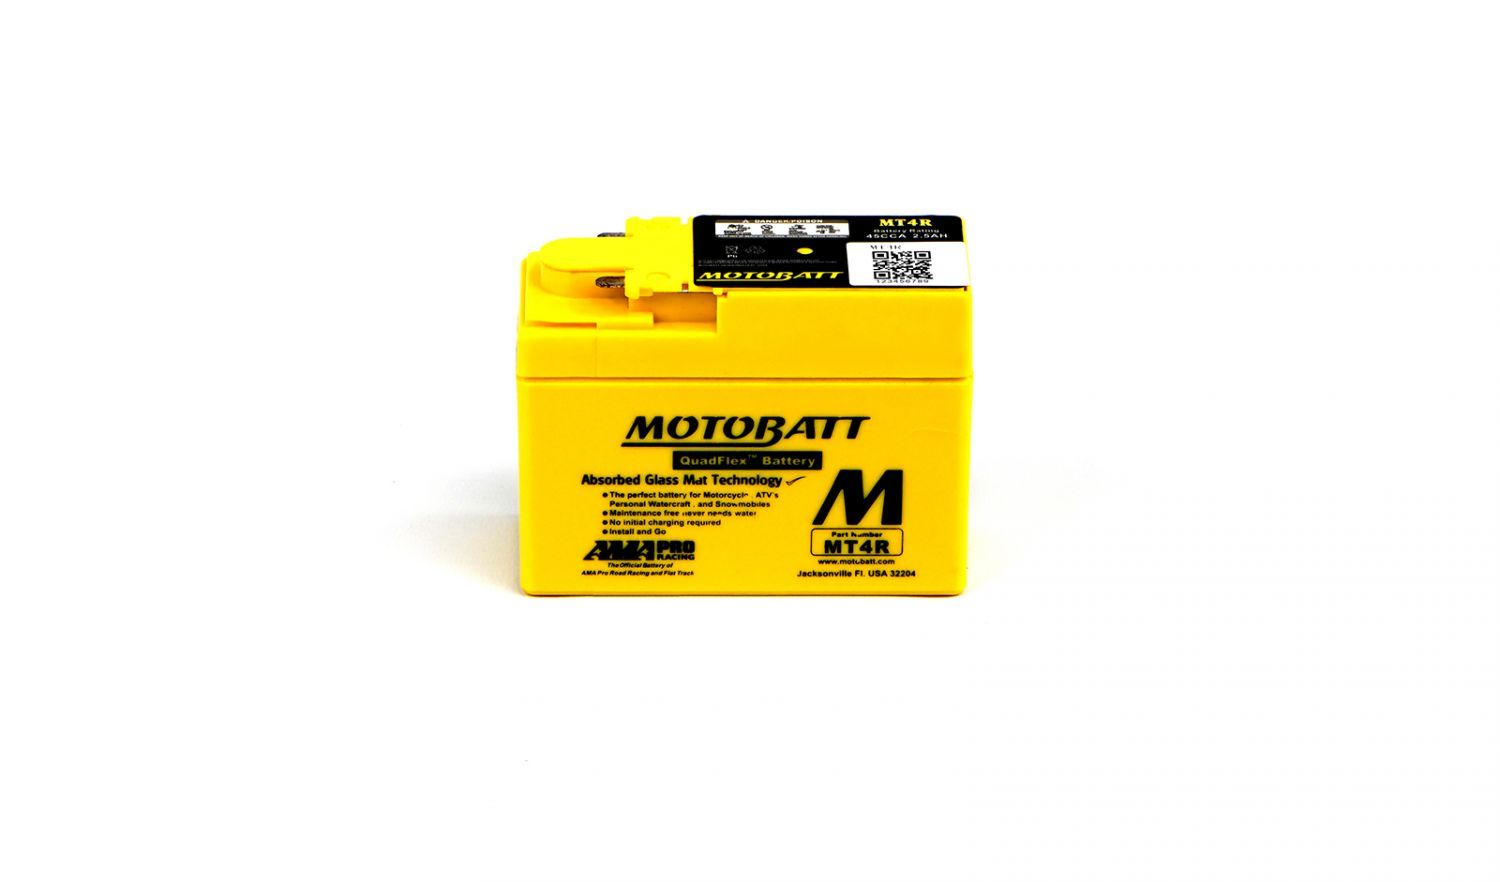 Motobatt Batteries - 501046MY image